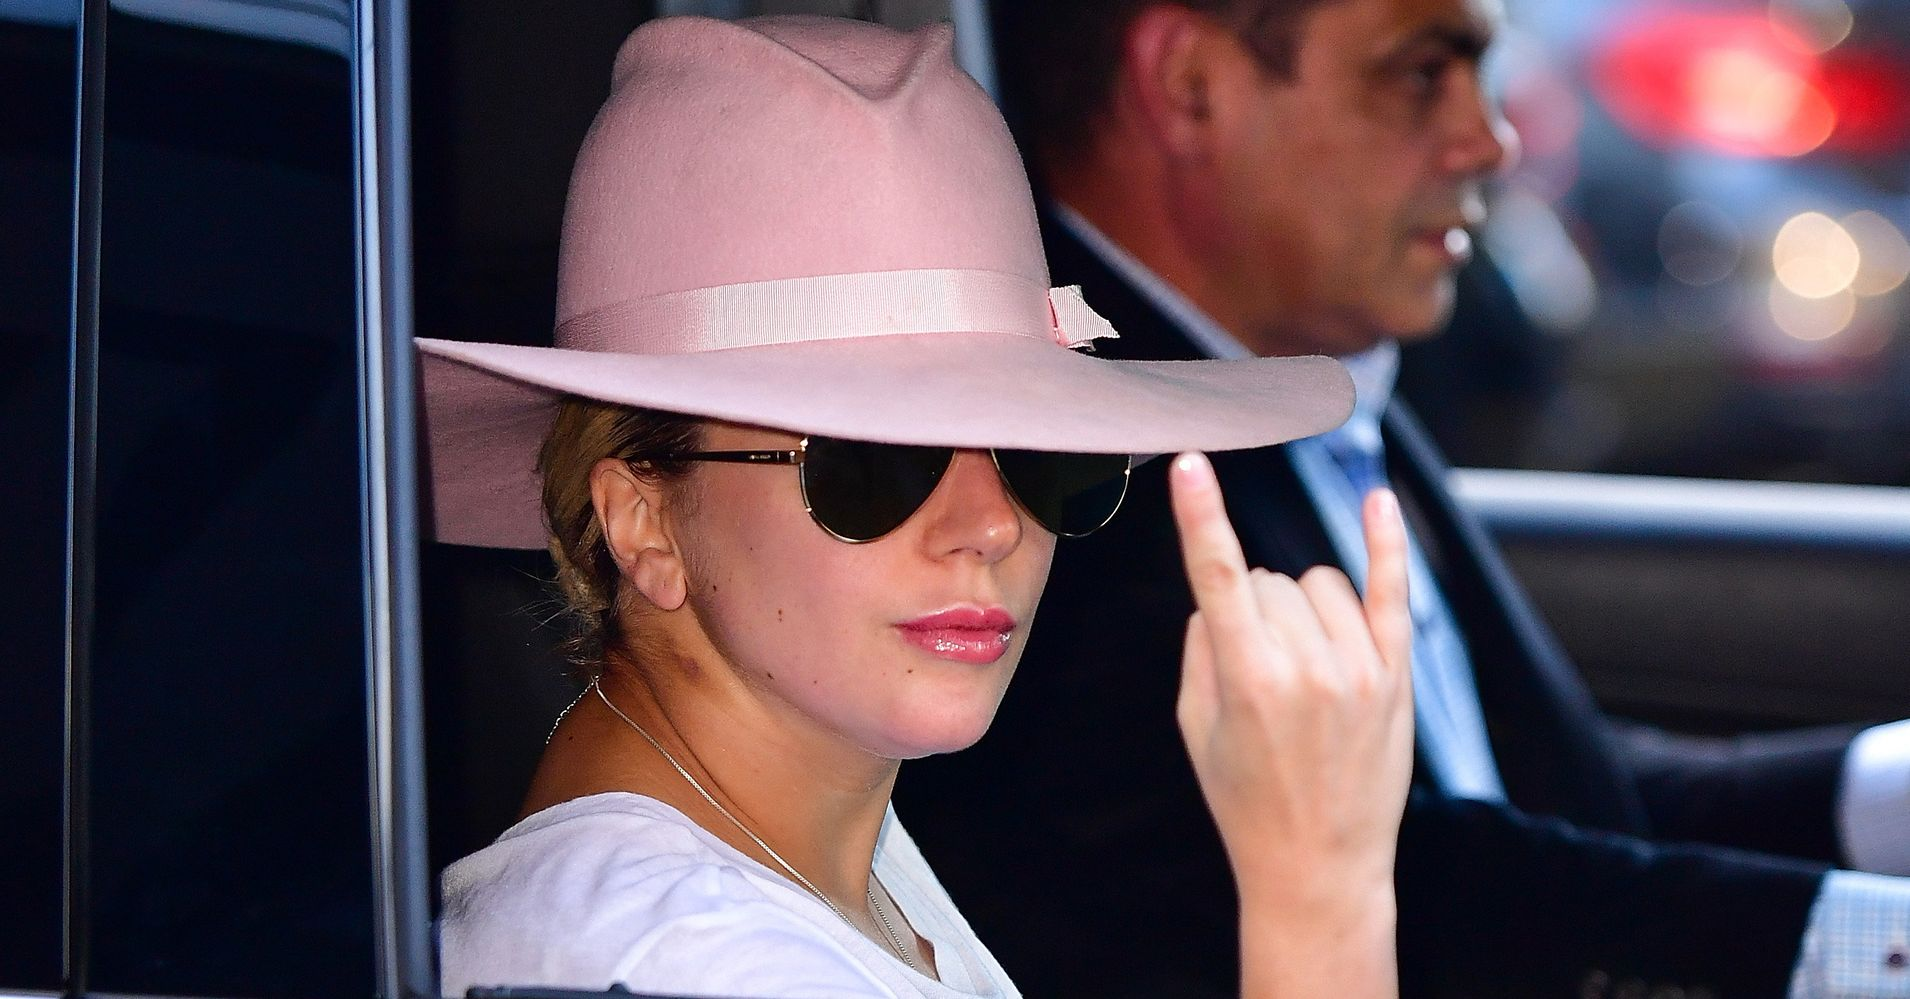 Here s The Deal With That Pink Hat Lady Gaga s Been Wearing ... ae41eb76407